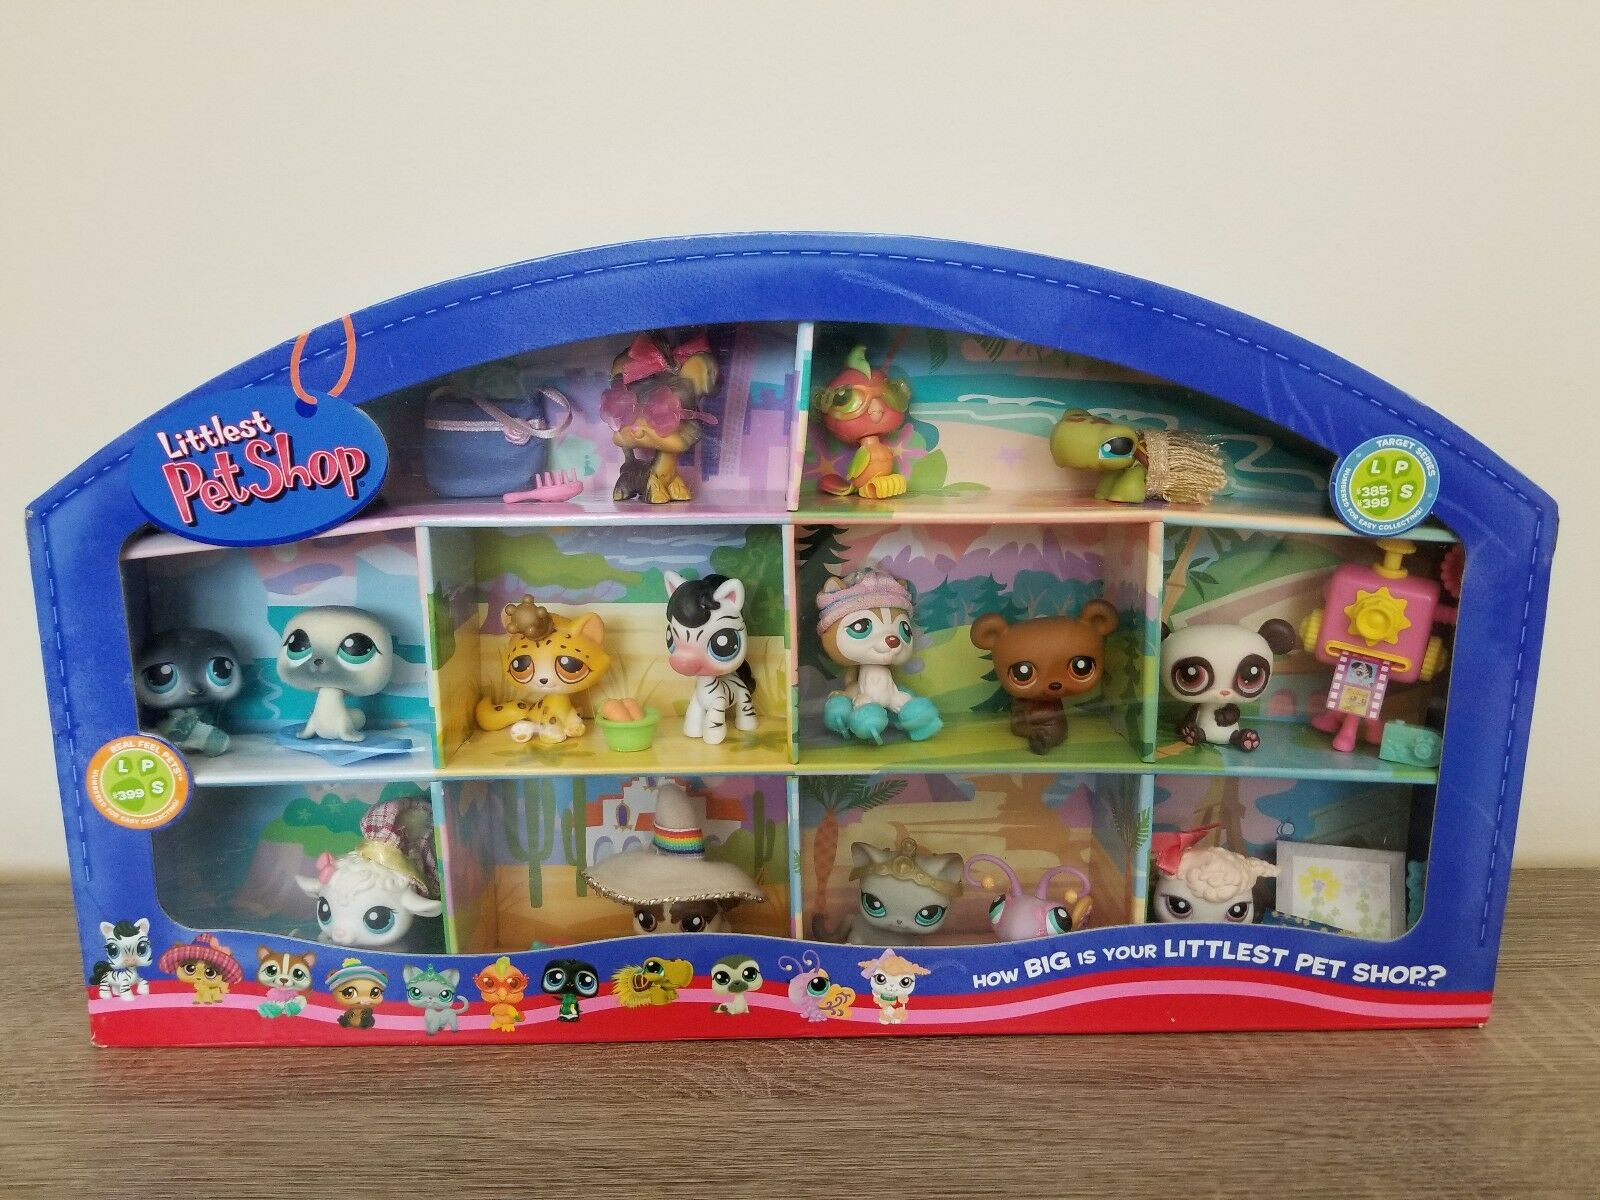 Littlest Pet Shop Around the World Used in Box Rare Target Exclusive 2007